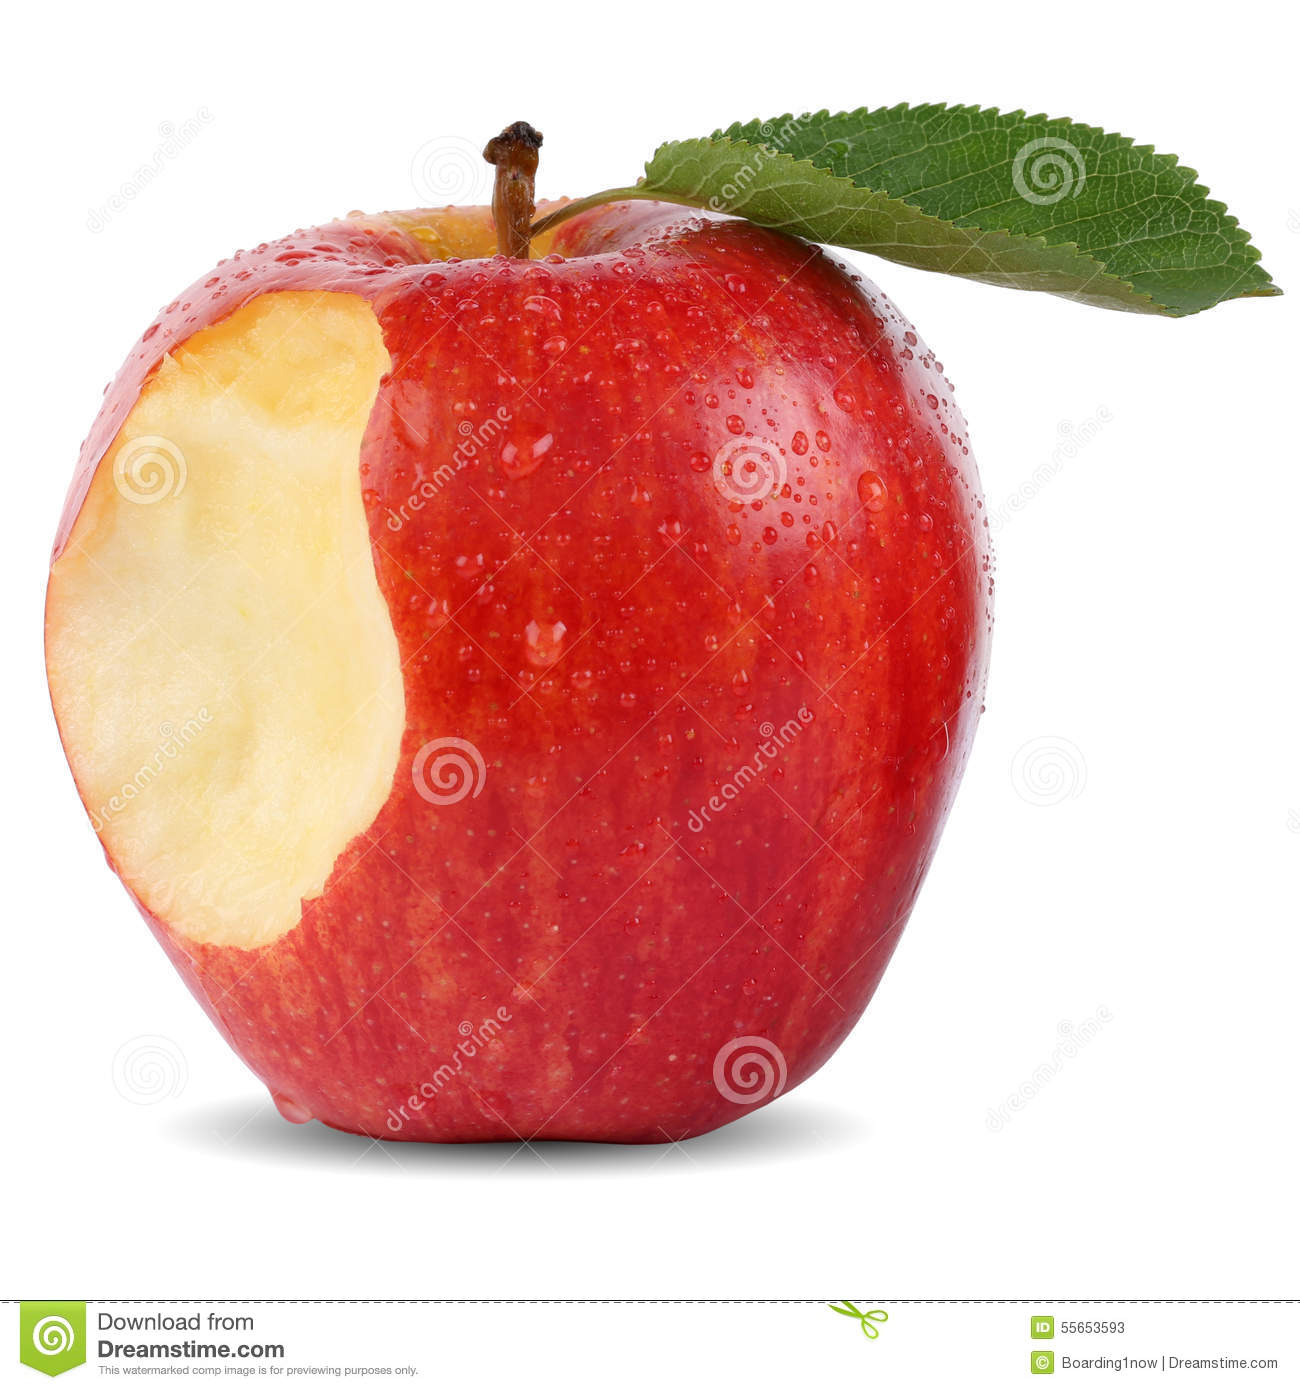 Apple fruit images download - Bitten Red Apple Fruit Missing Bite Isolated